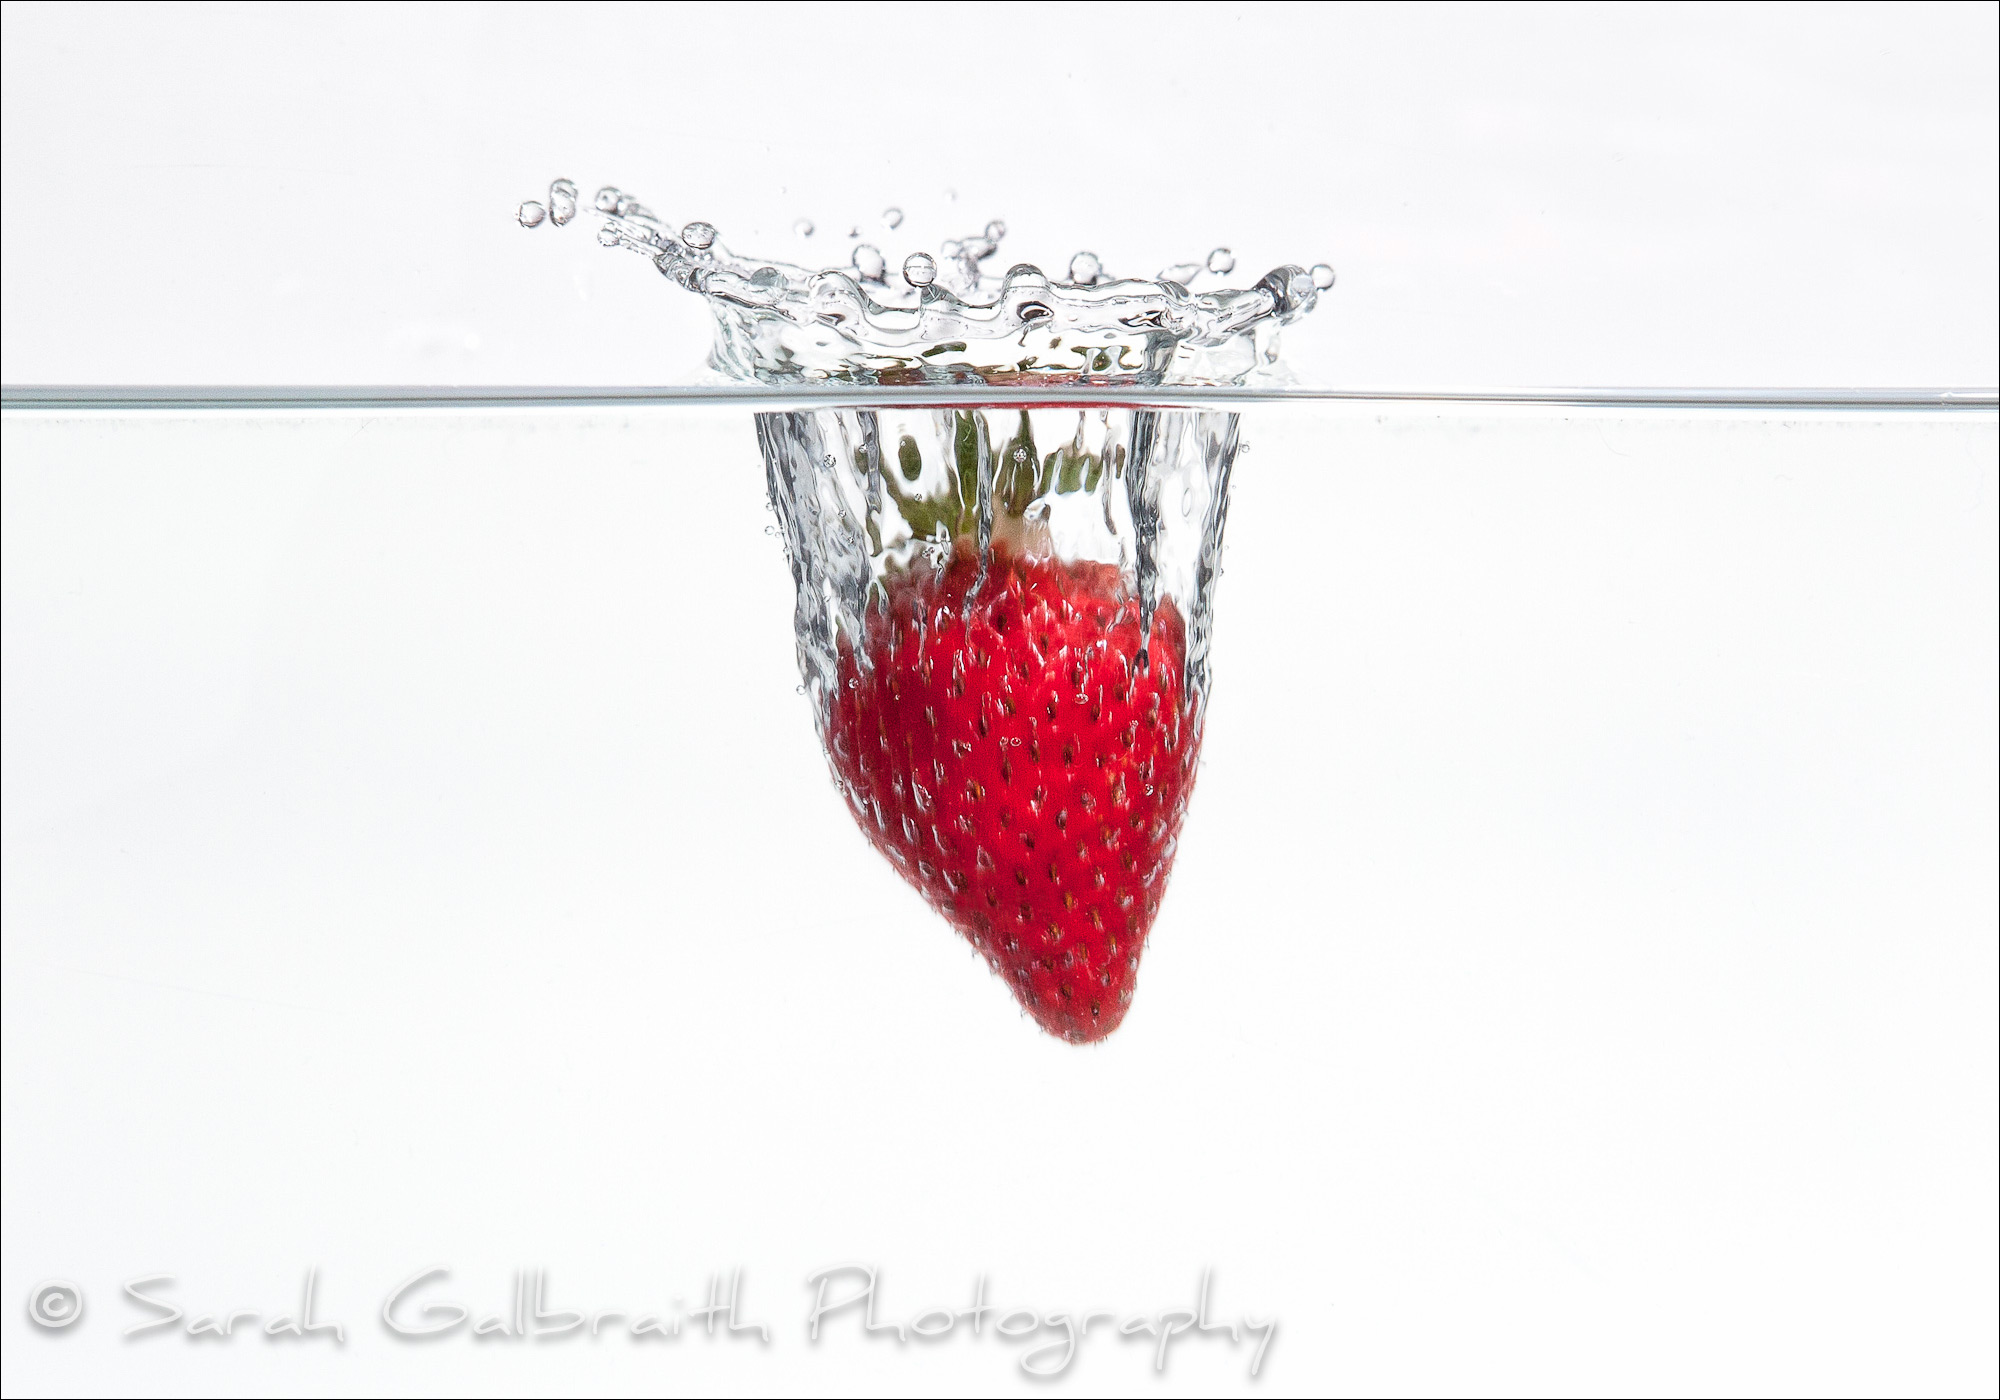 001_Portland-beverage-and-liquid-photography2